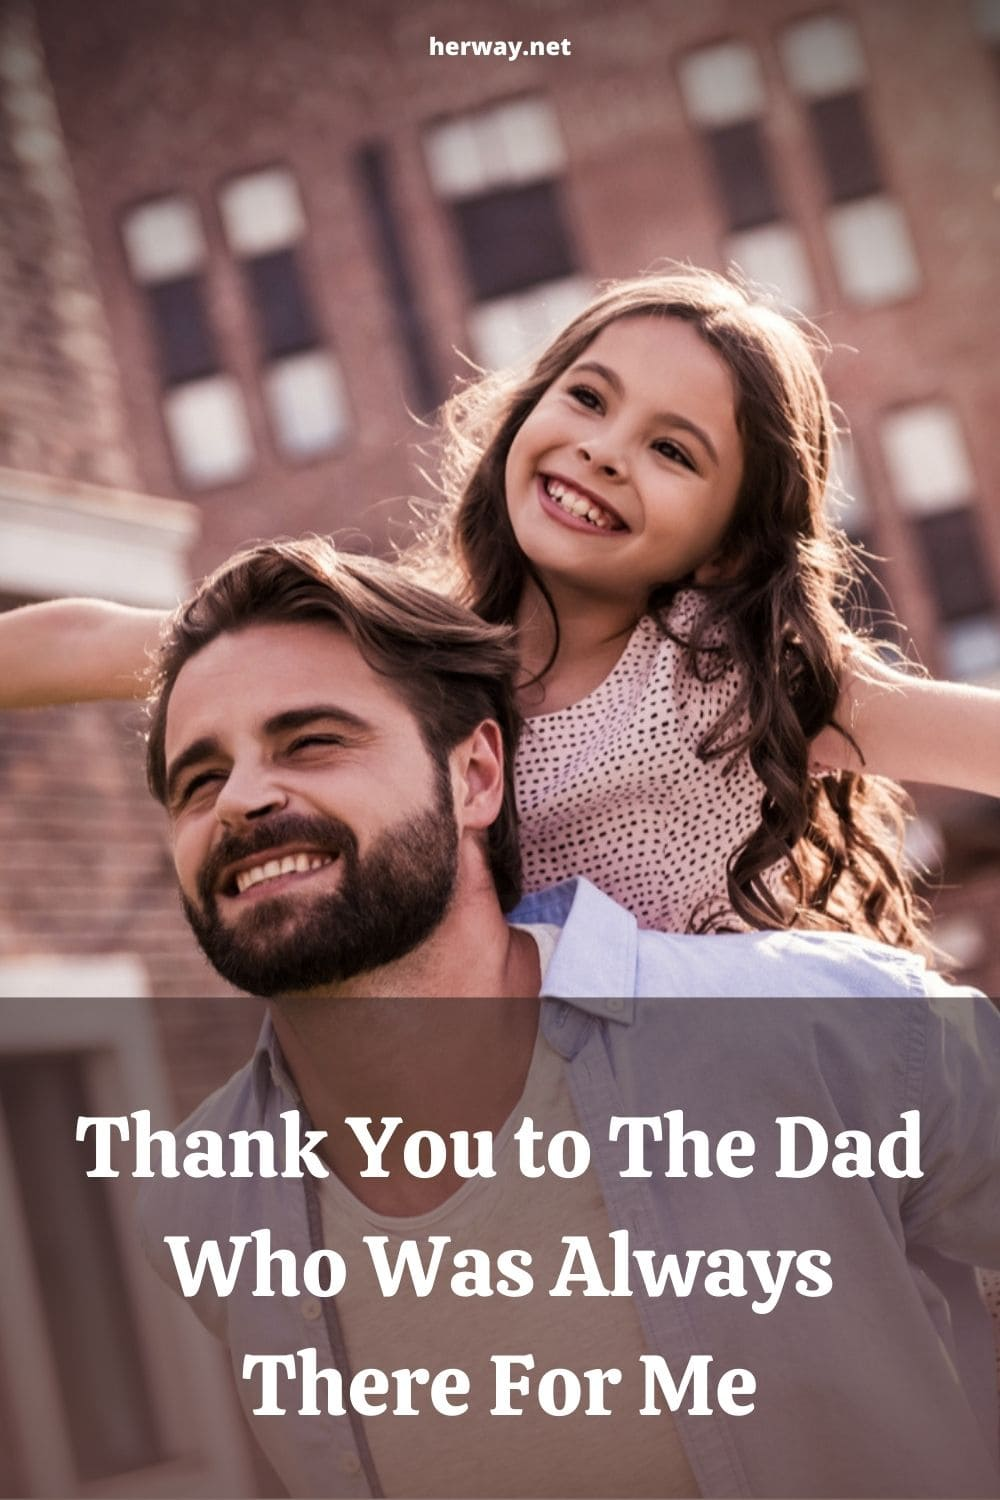 Thank You to The Dad Who Was Always There For Me